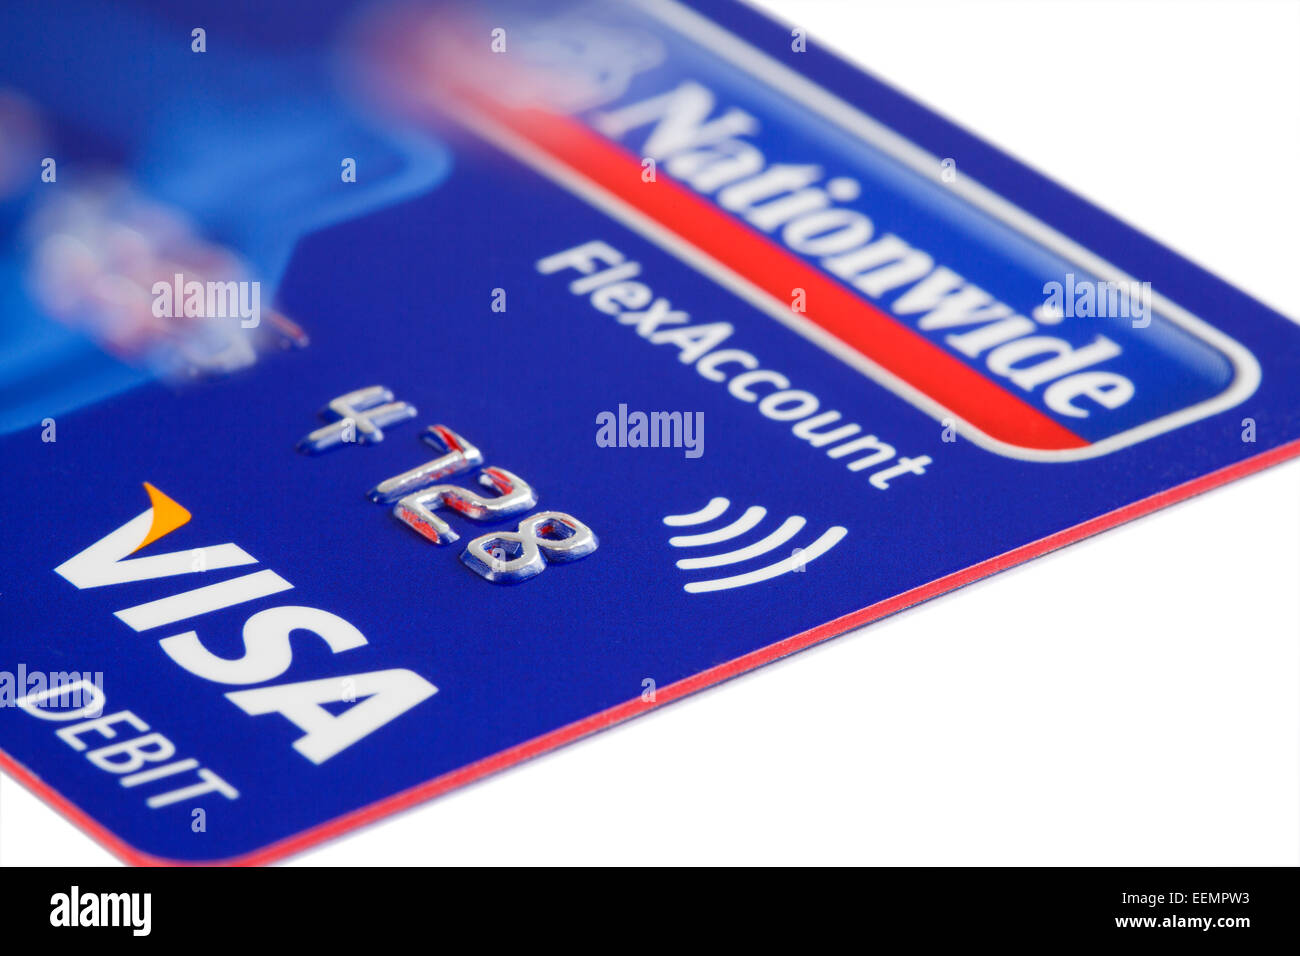 UK issue Visa paywave debit card using contactless payment technology from Nationwide bank on a white background. - Stock Image